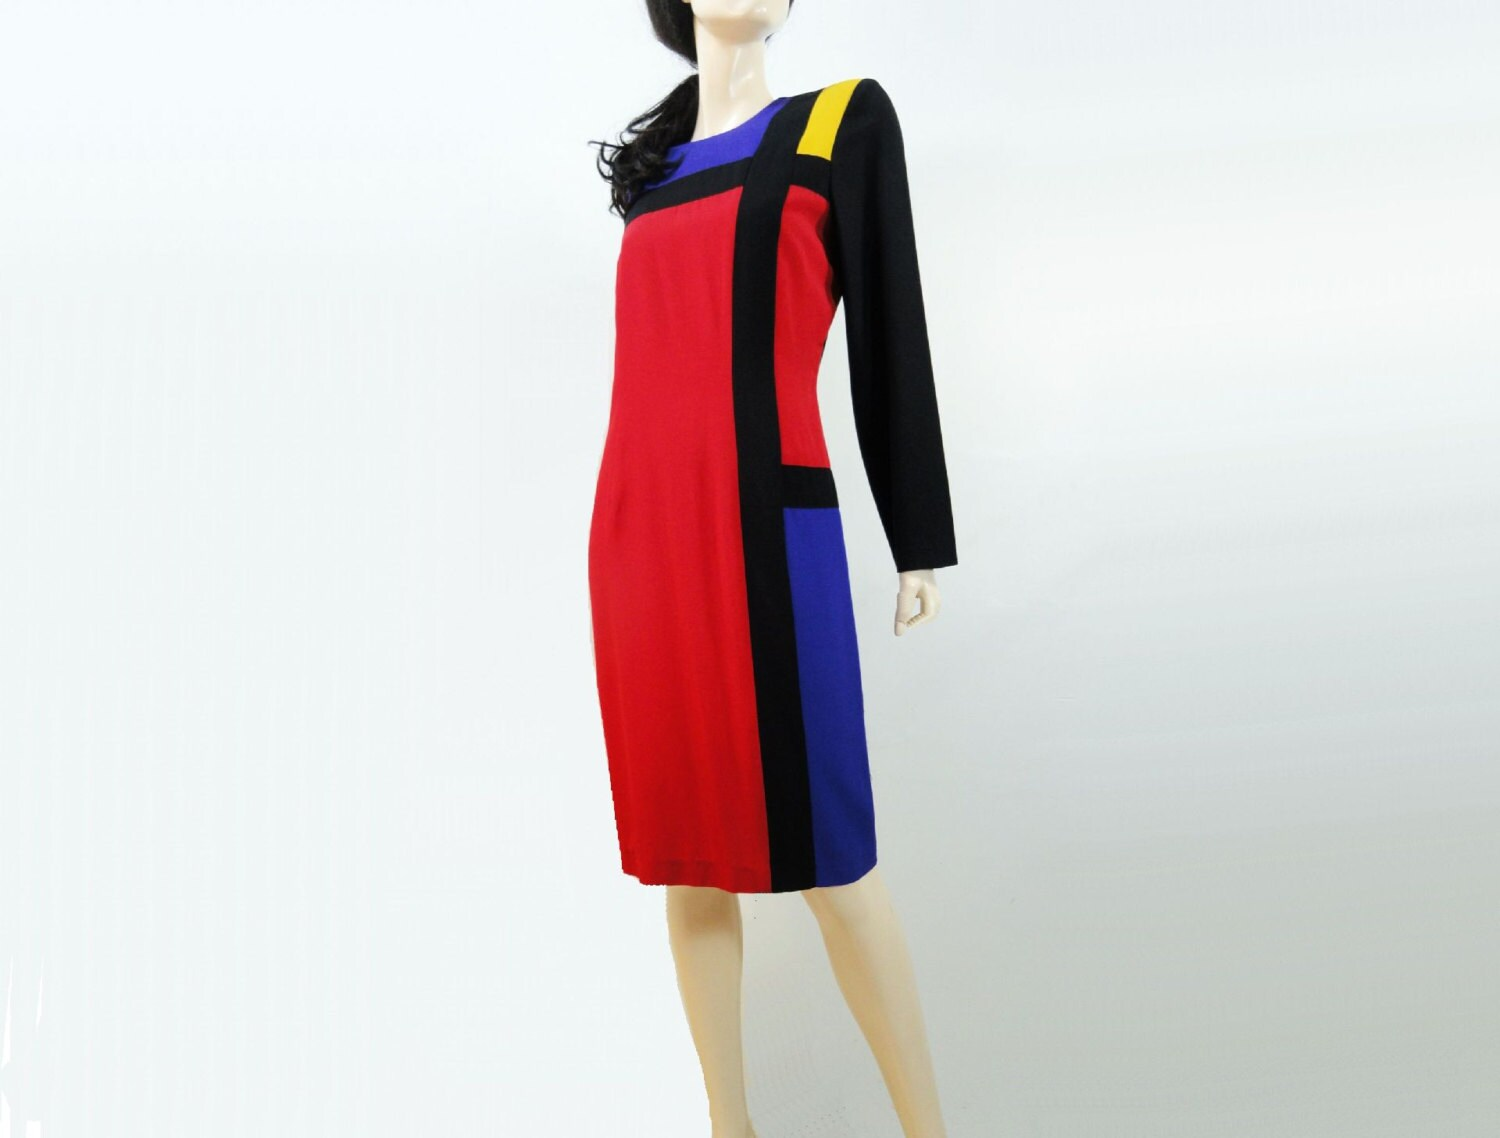 1980s Dress Color Block Mondrian Vintage 80s / 90s Dress L - StarletVintage